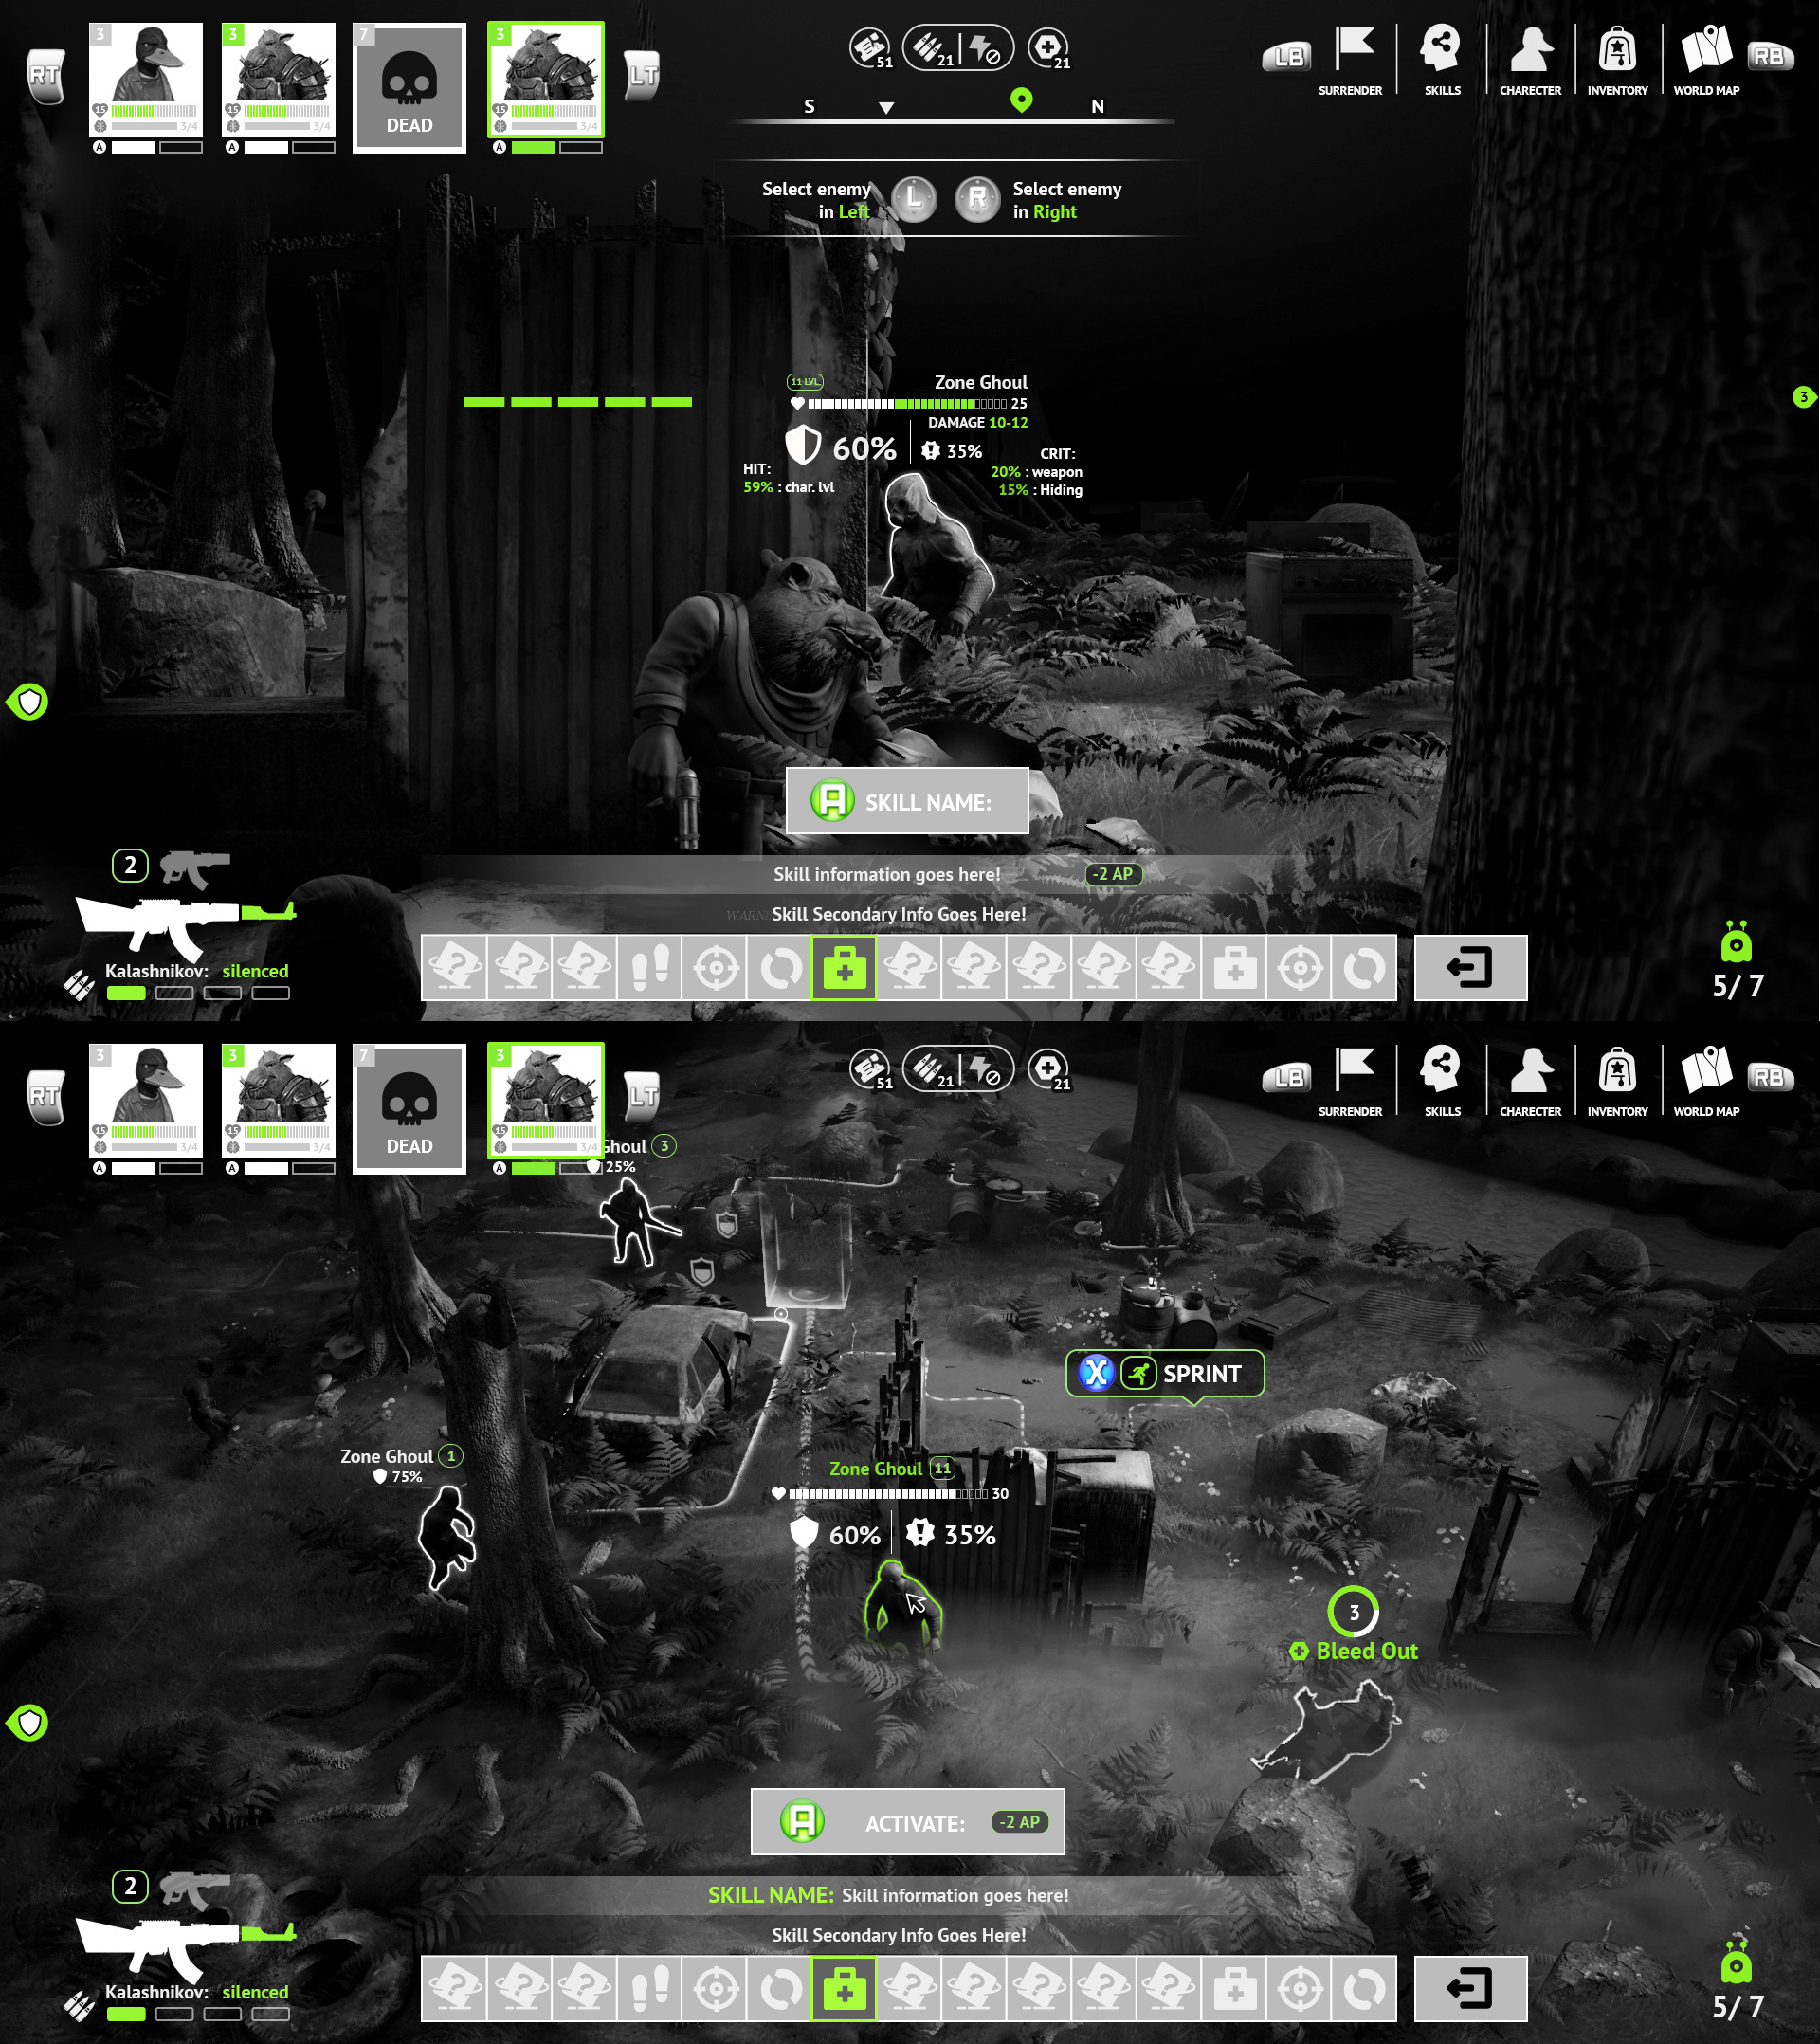 funcom-ui-gameinterface-gameart-roadtoeden-ps4-xbox-tactical-adventure-game-xcom-turn-based-gameux-game-experience-ux11